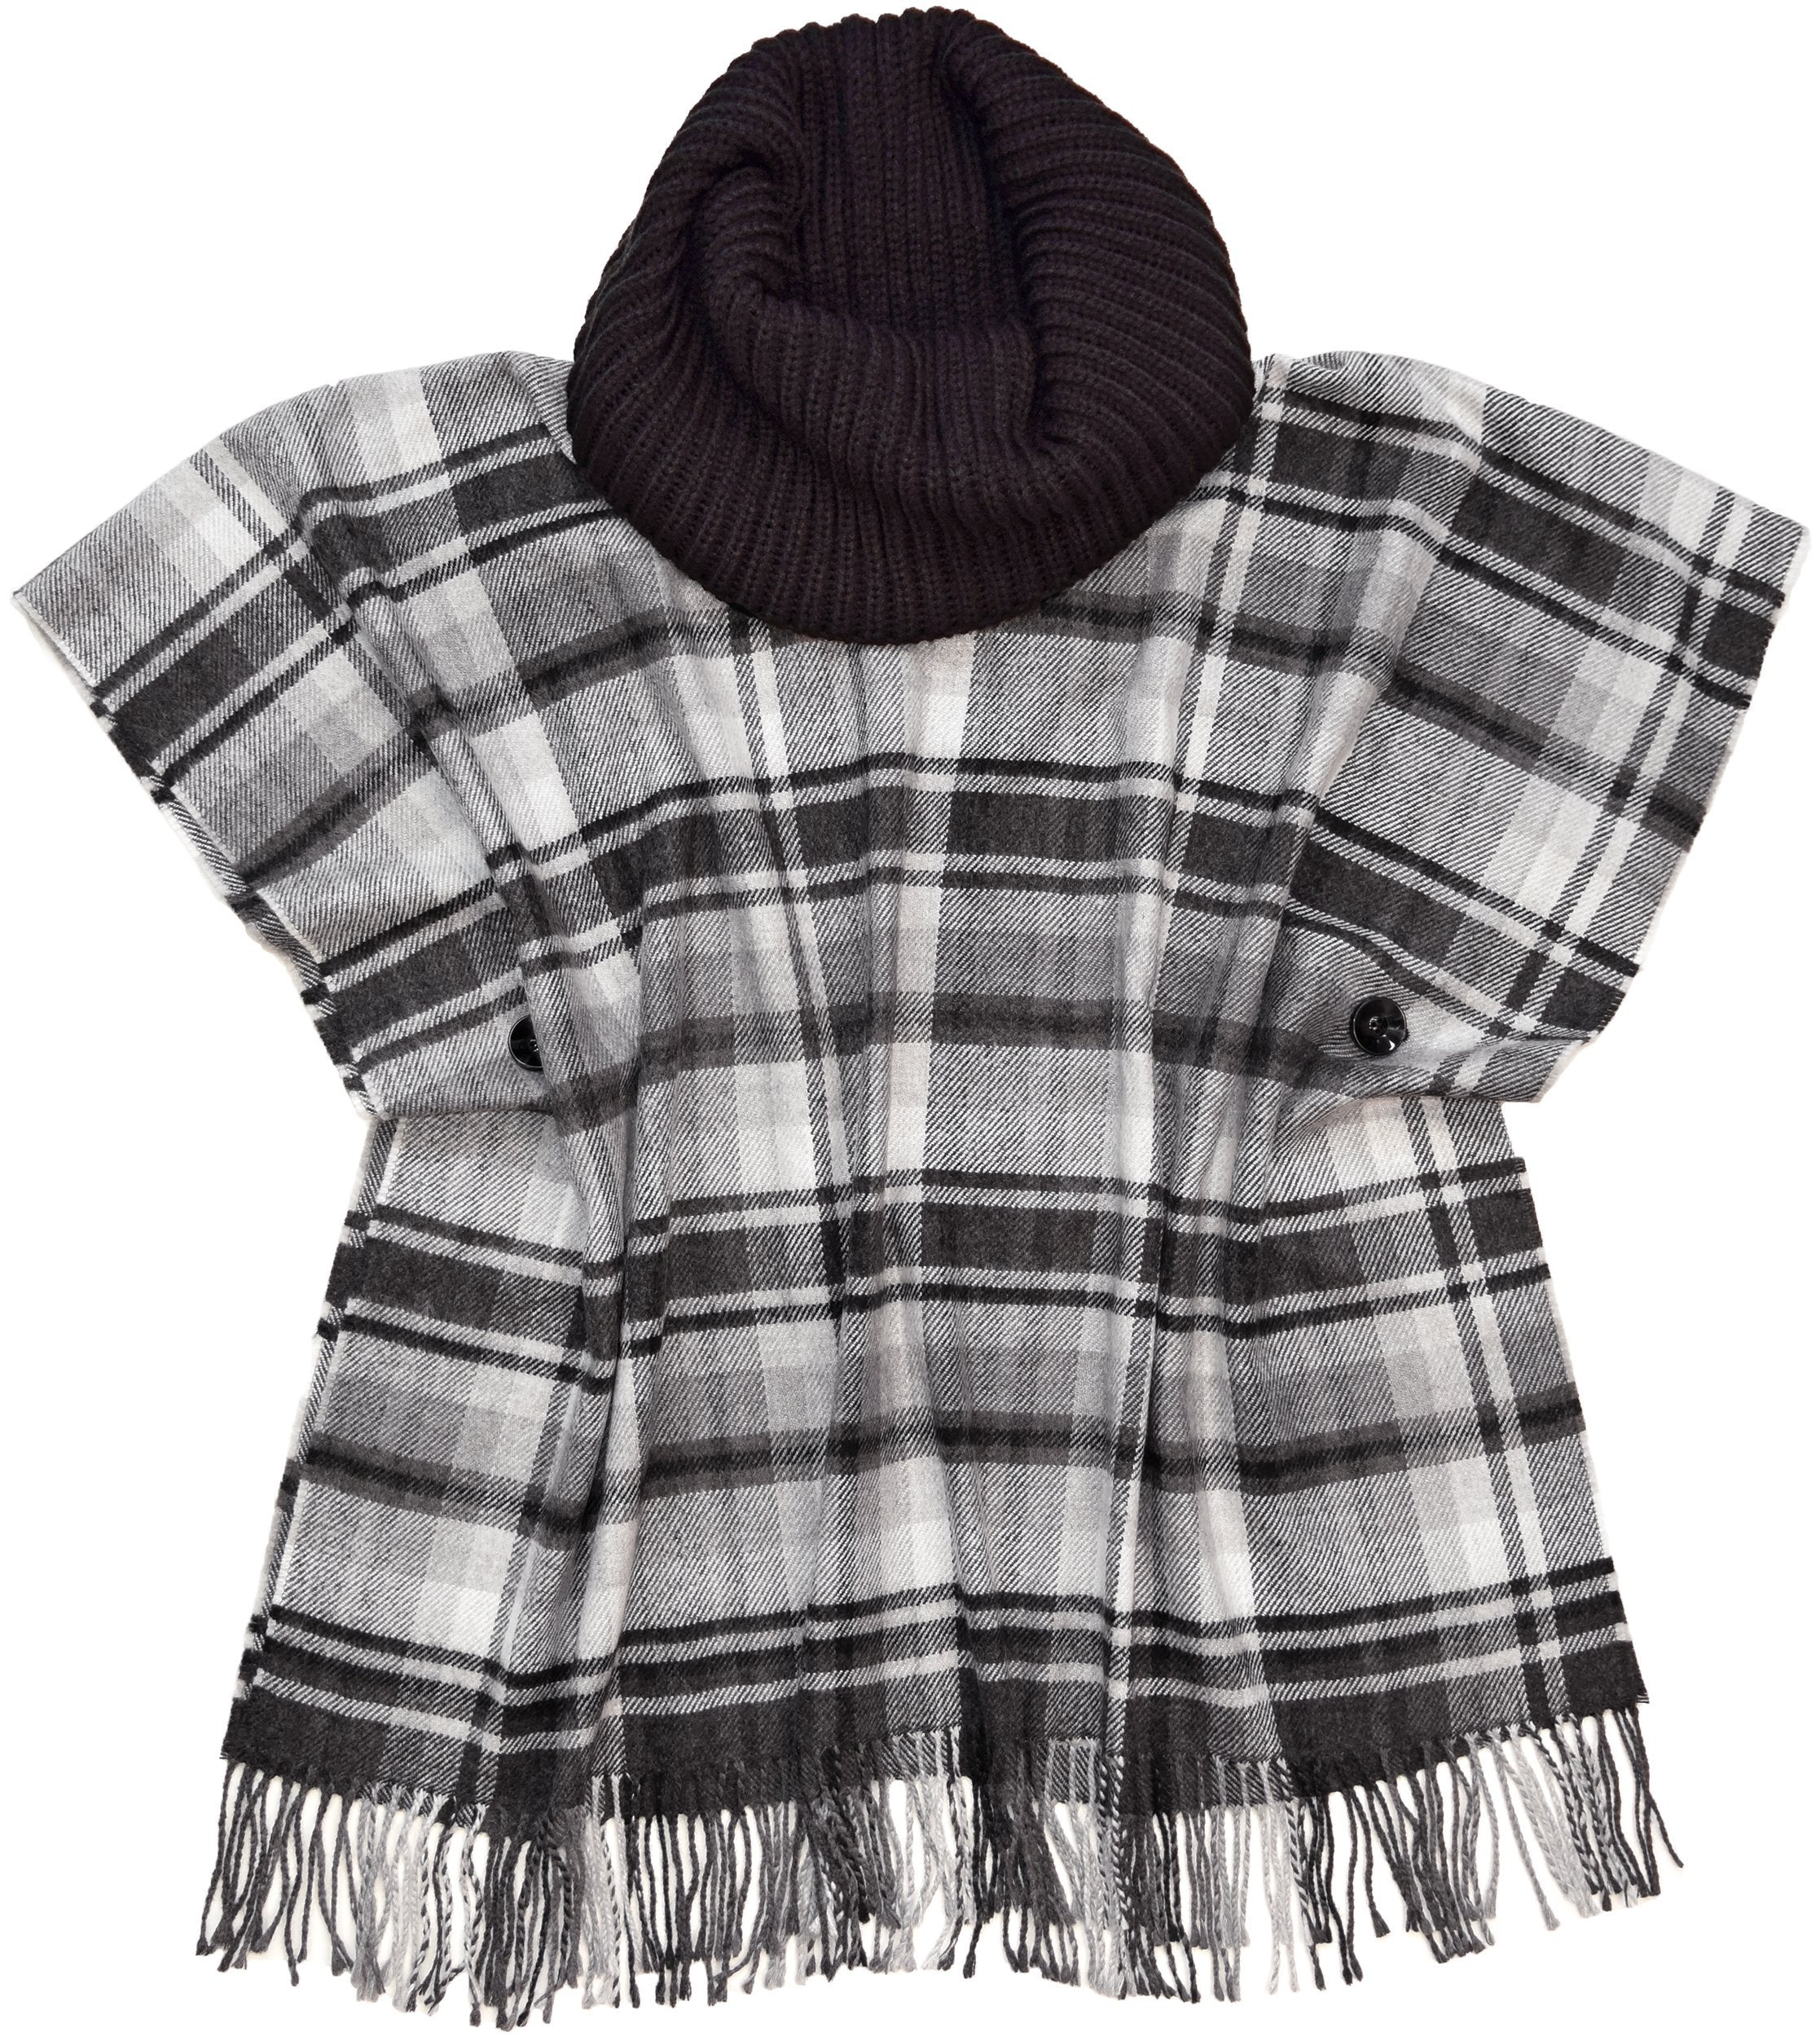 Block Plaid Acrylic Woven Poncho with Knit Collar